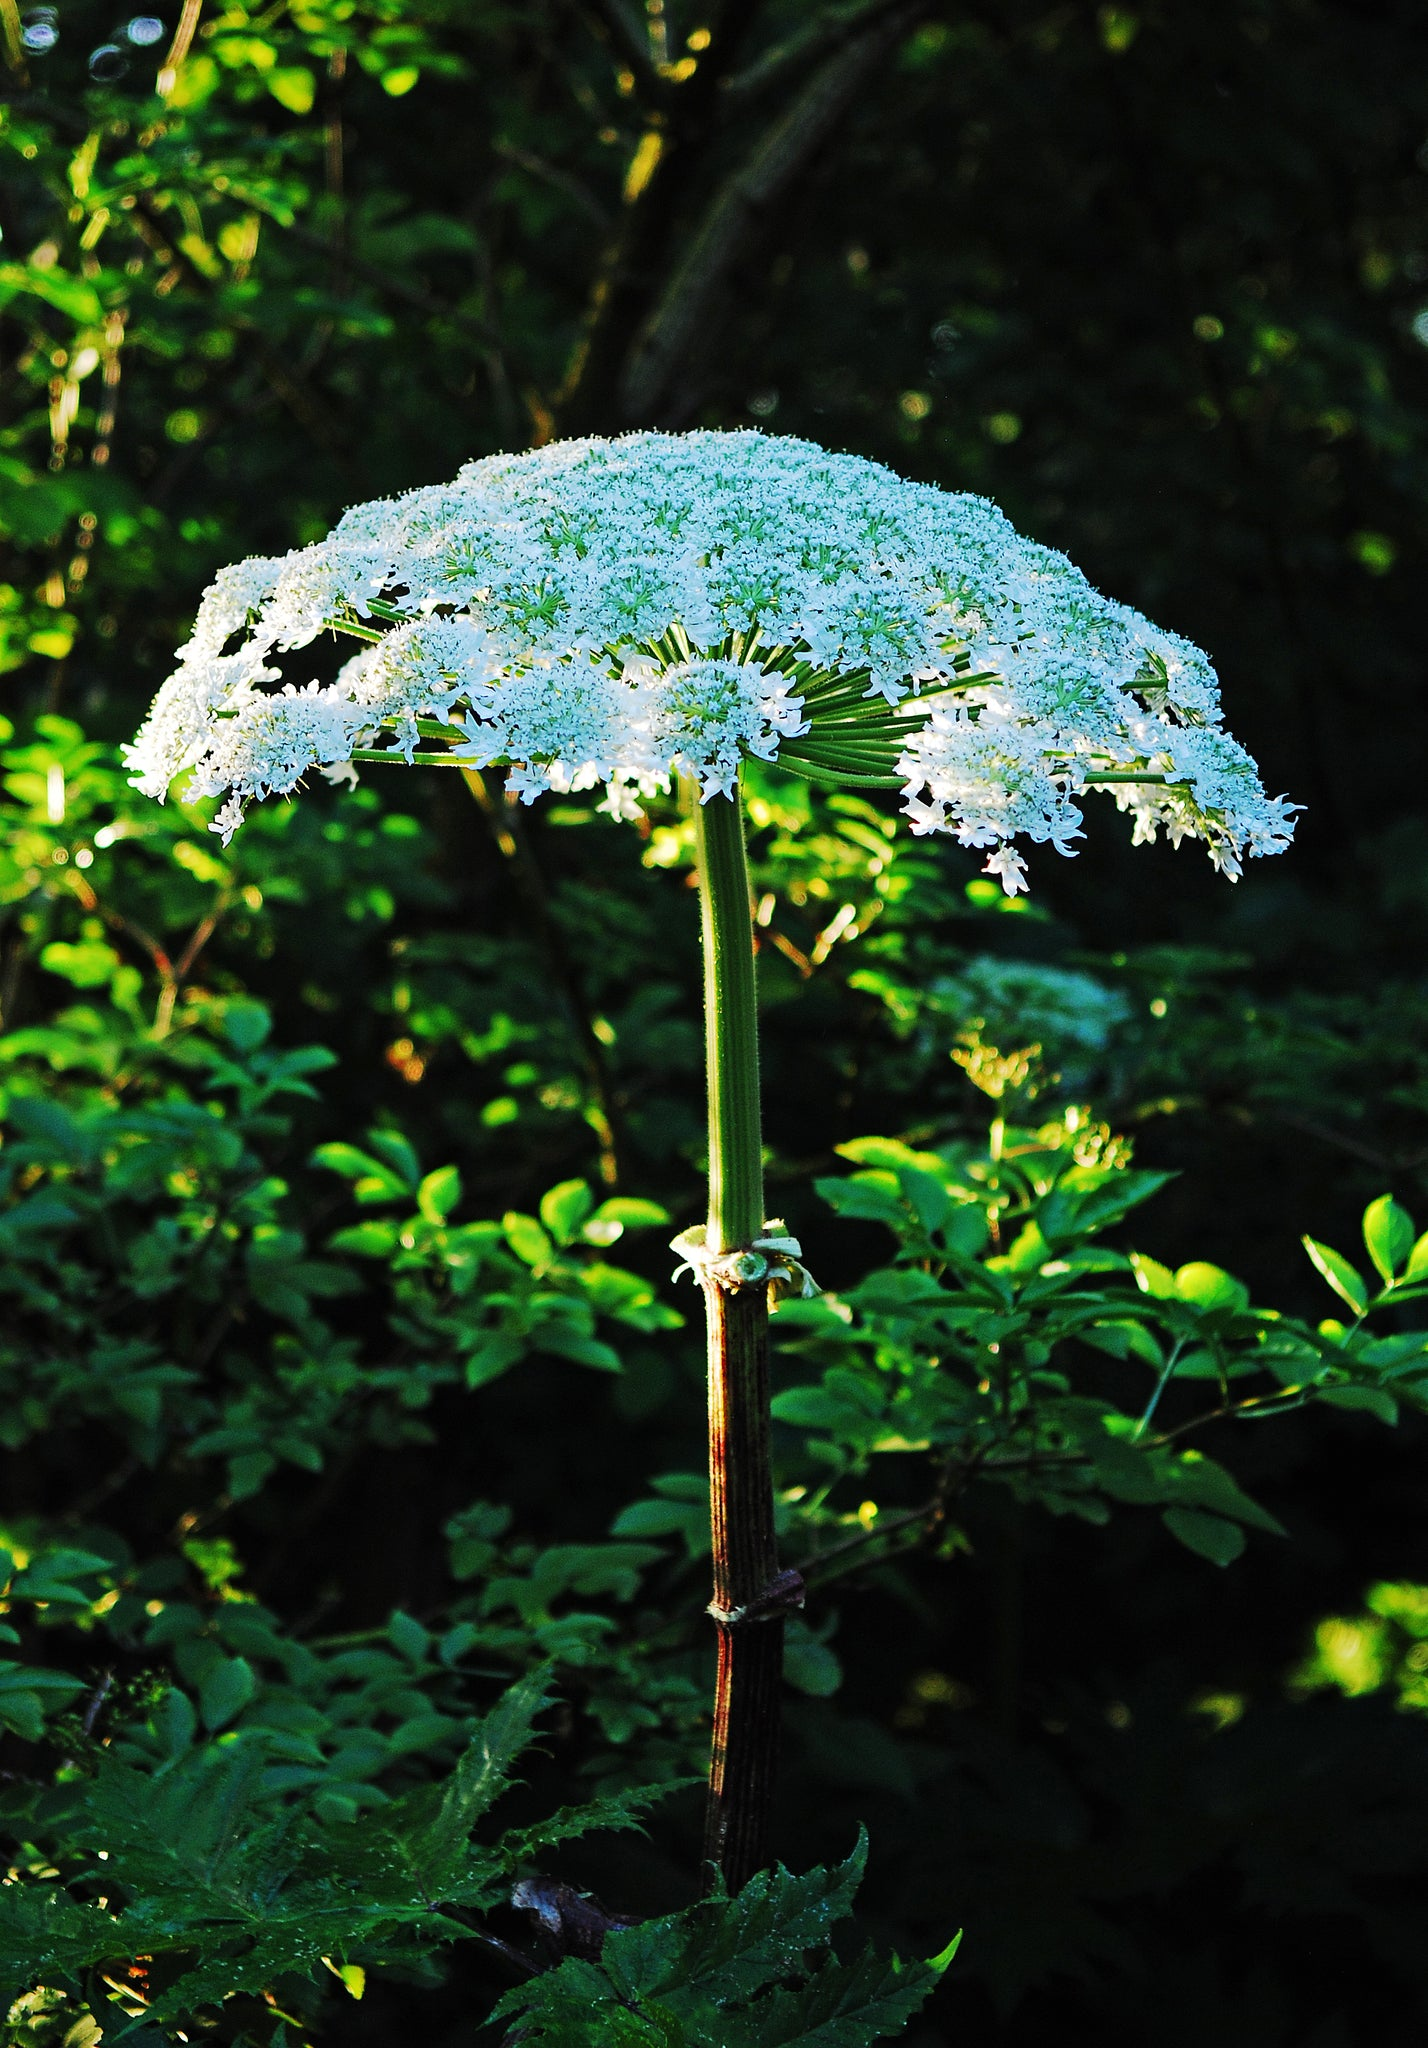 Giant Hogweed like a Natural Umbrella